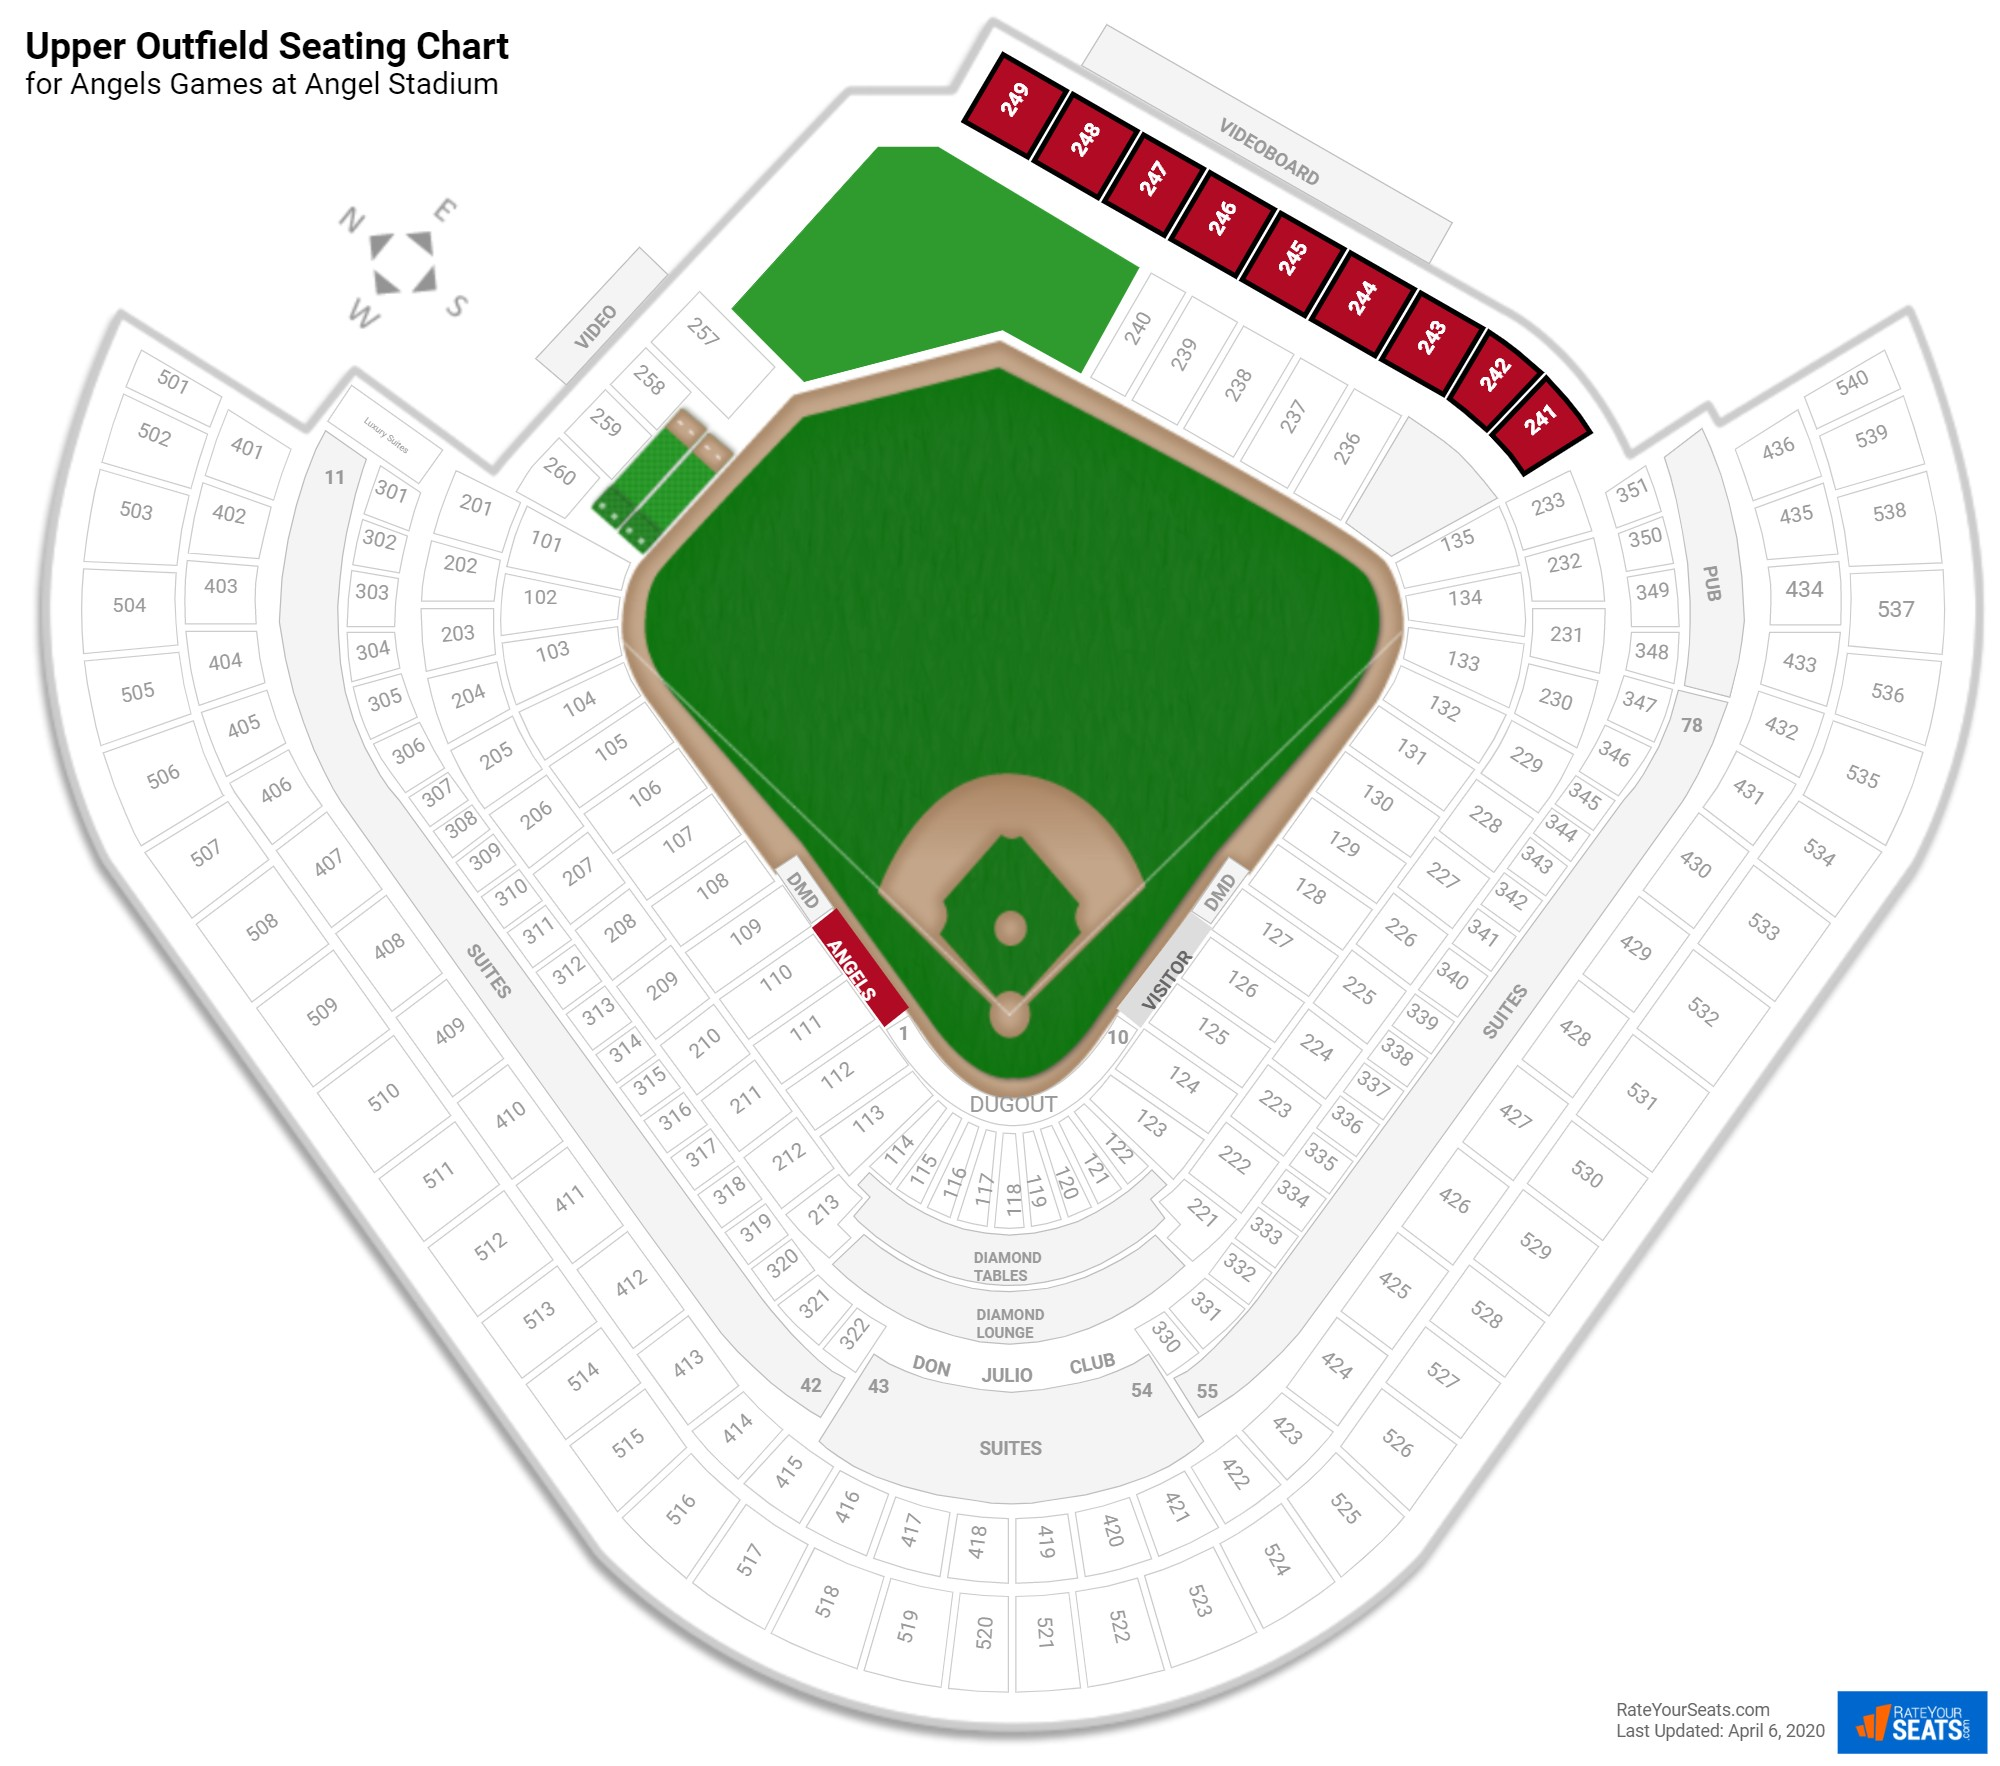 Angel Stadium Upper Outfield seating chart